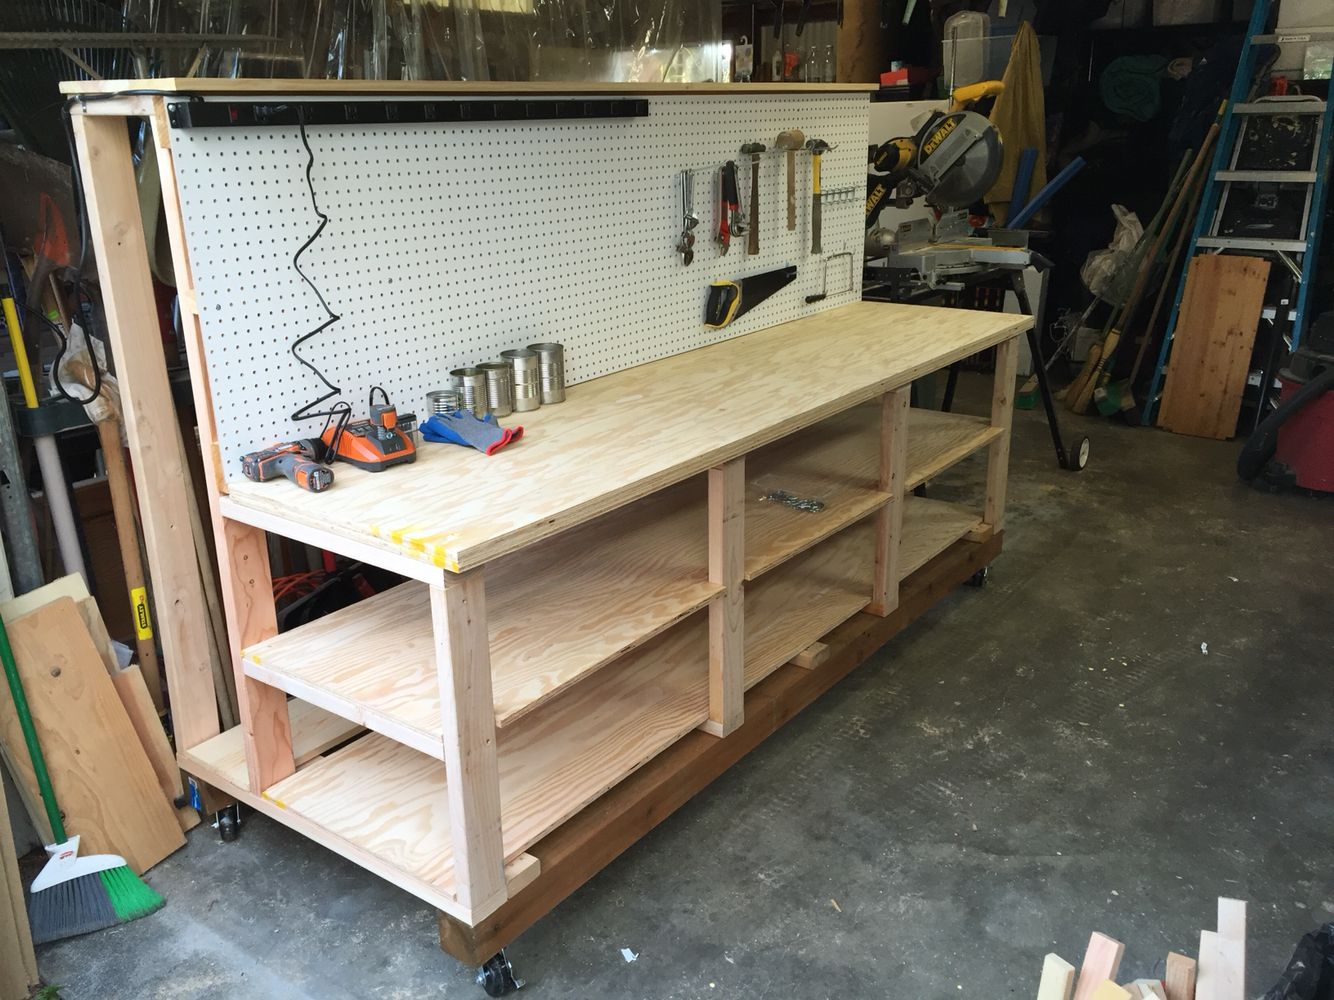 Garage Workbench And Storage Shop Bench And Wood Storage With Room For 4x8 Sheets In